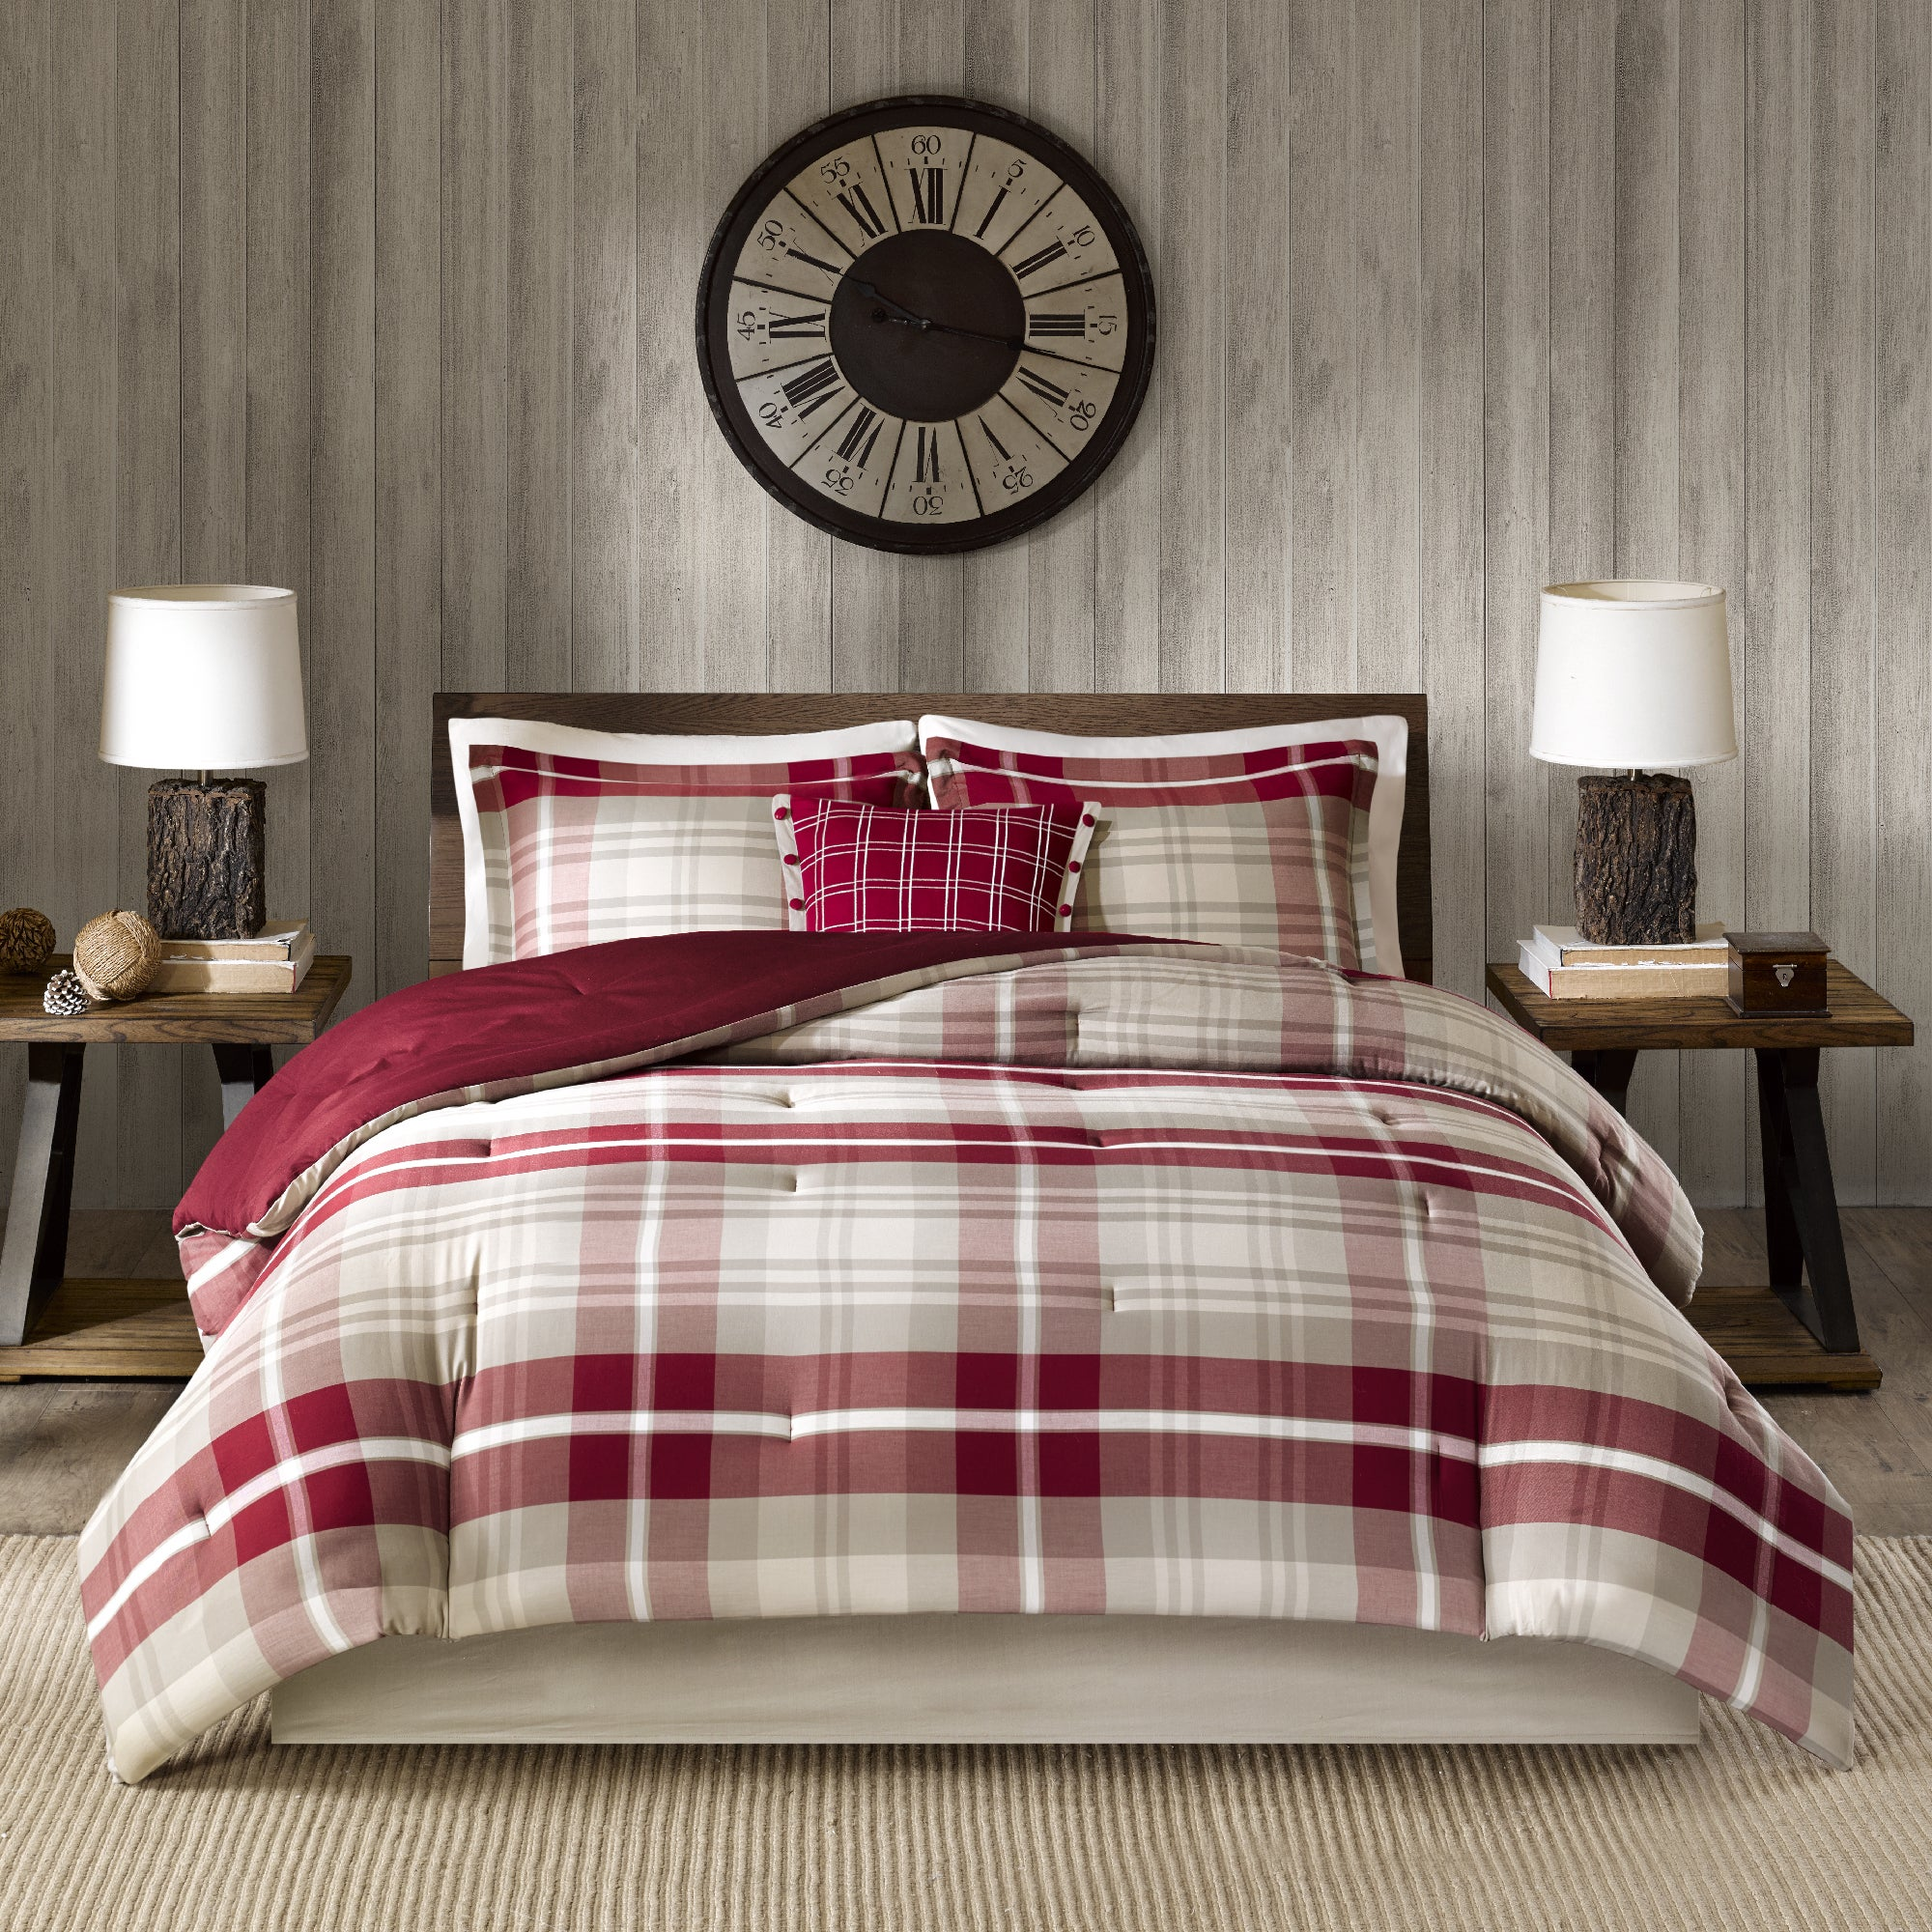 Woolrich sheridan tan red oversized cotton comforter set